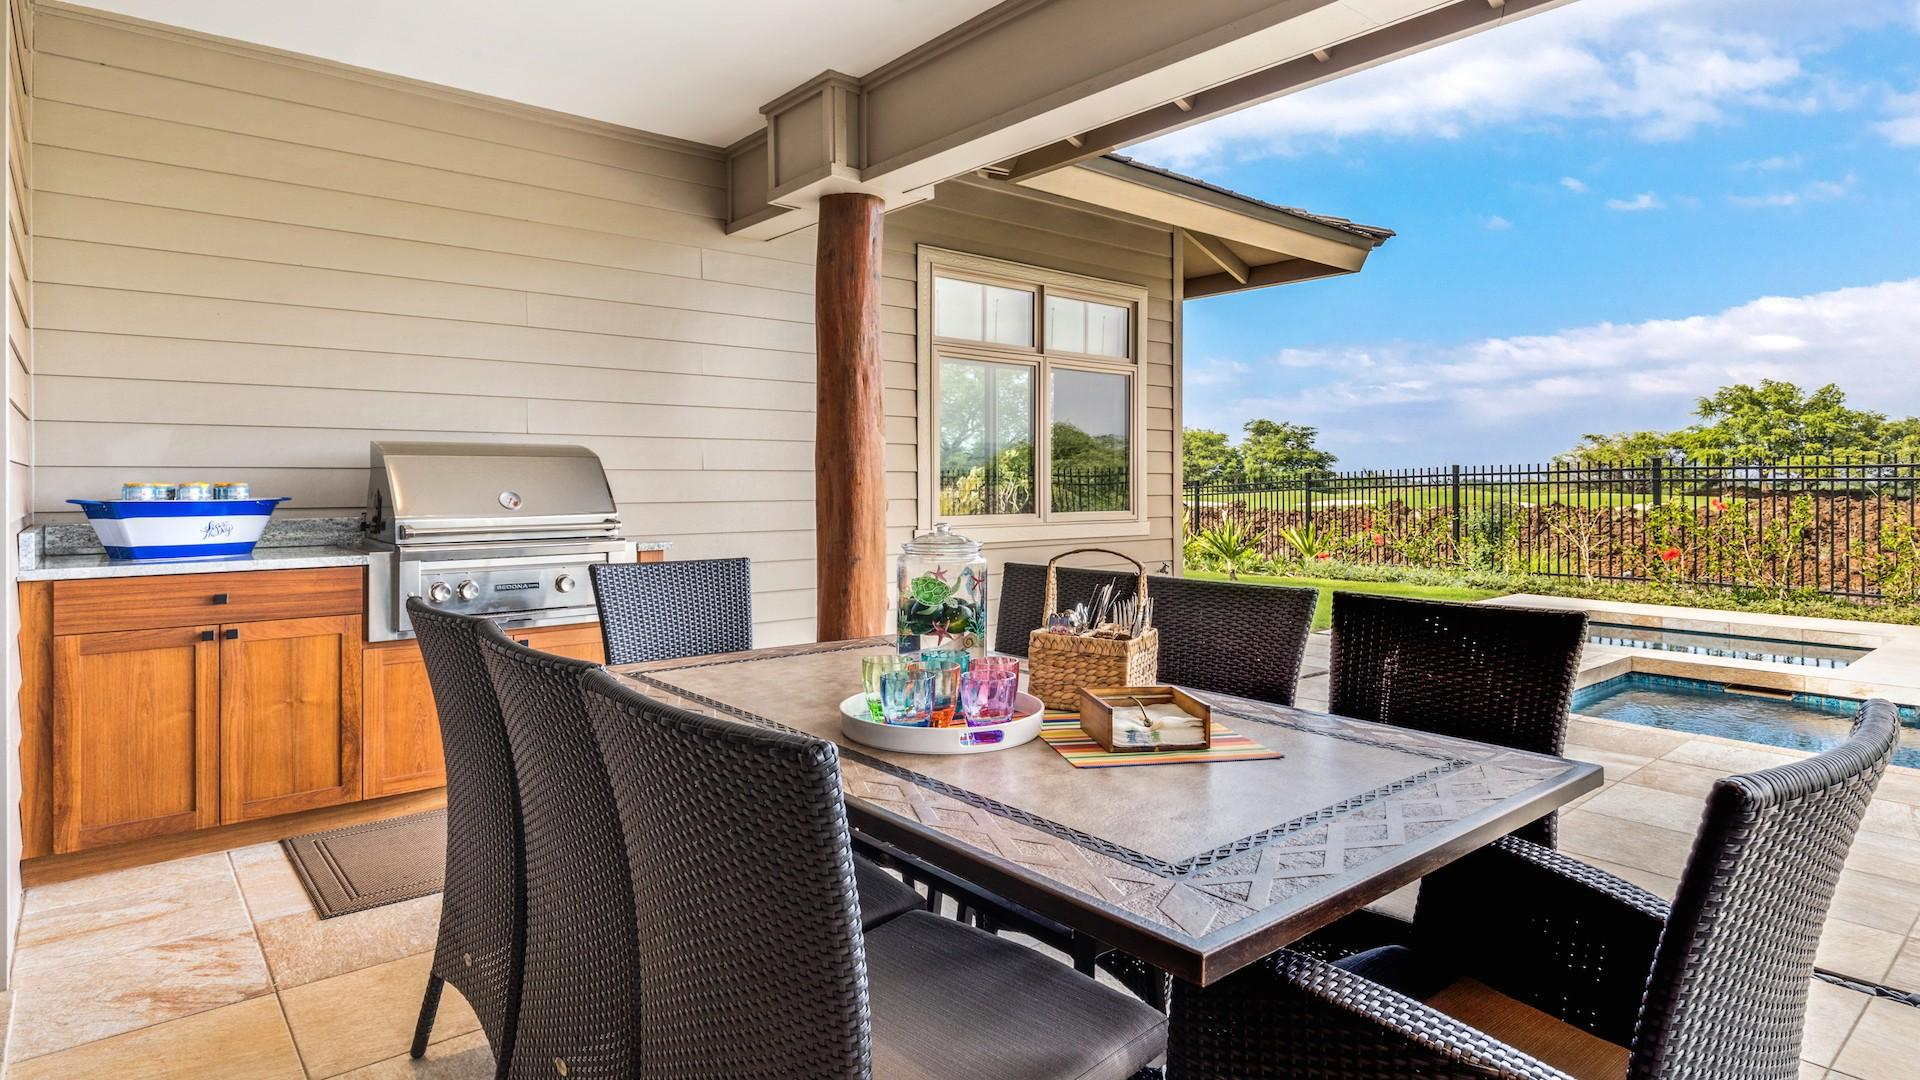 Outdoor dining set for eight with view of built-in barbecue grill.